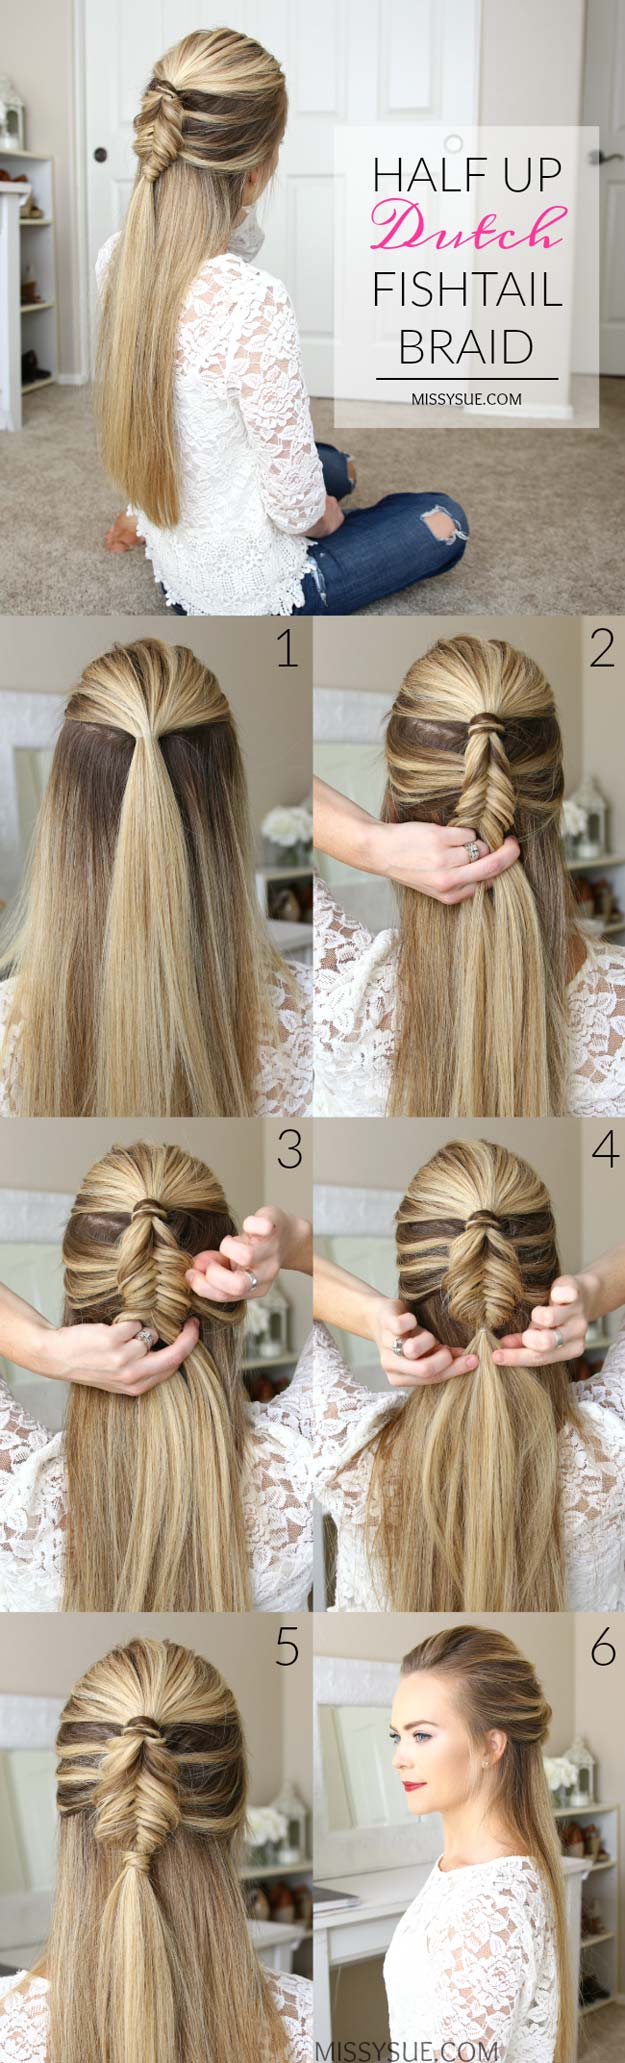 40 of the best cute hair braiding tutorials best hair braiding tutorials half up dutch fishtail braid easy step by step tutorials baditri Image collections